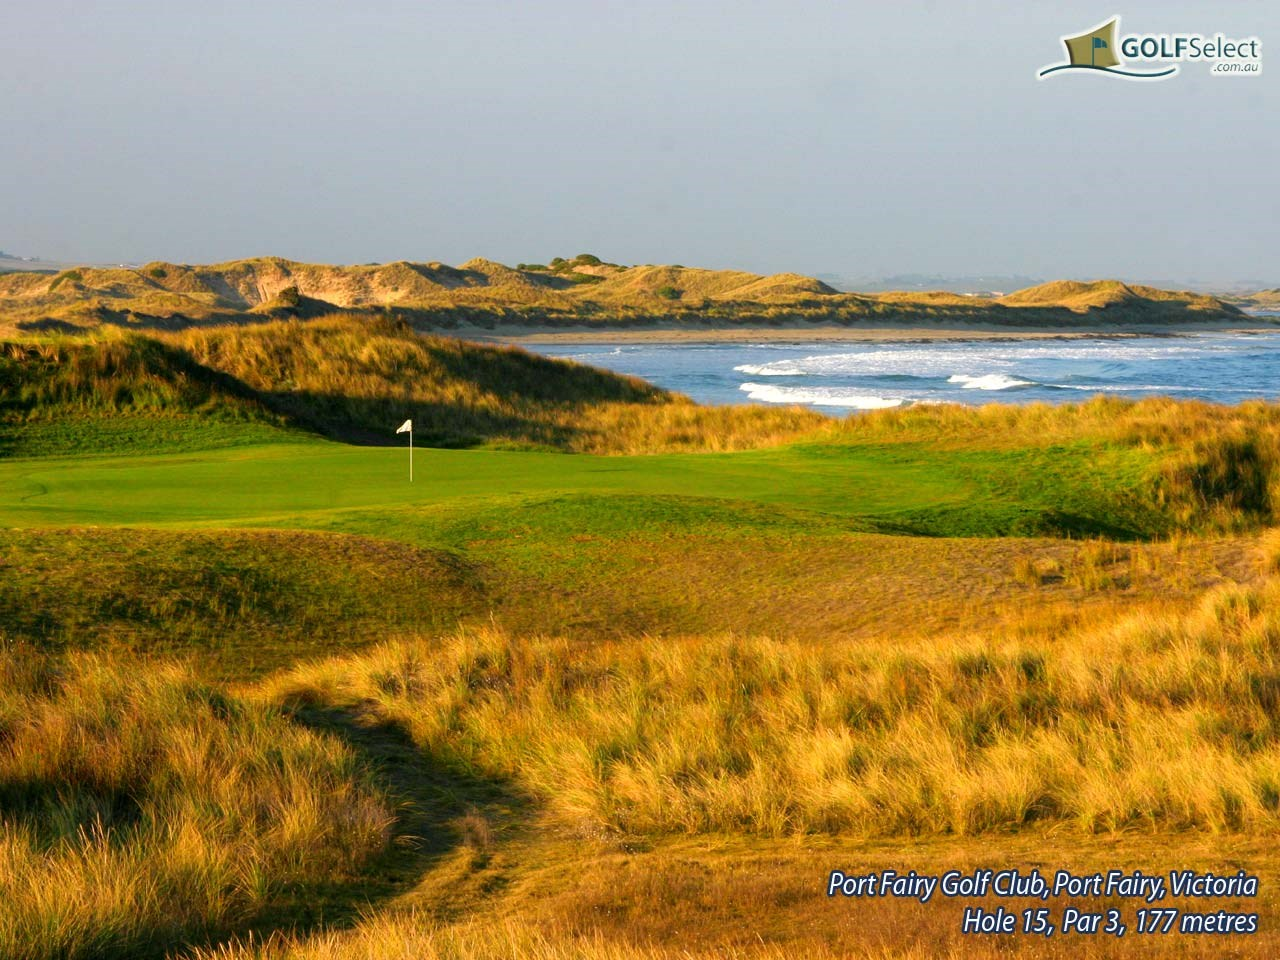 Port Fairy Golf Club Hole 15, Par 3, 177 metres